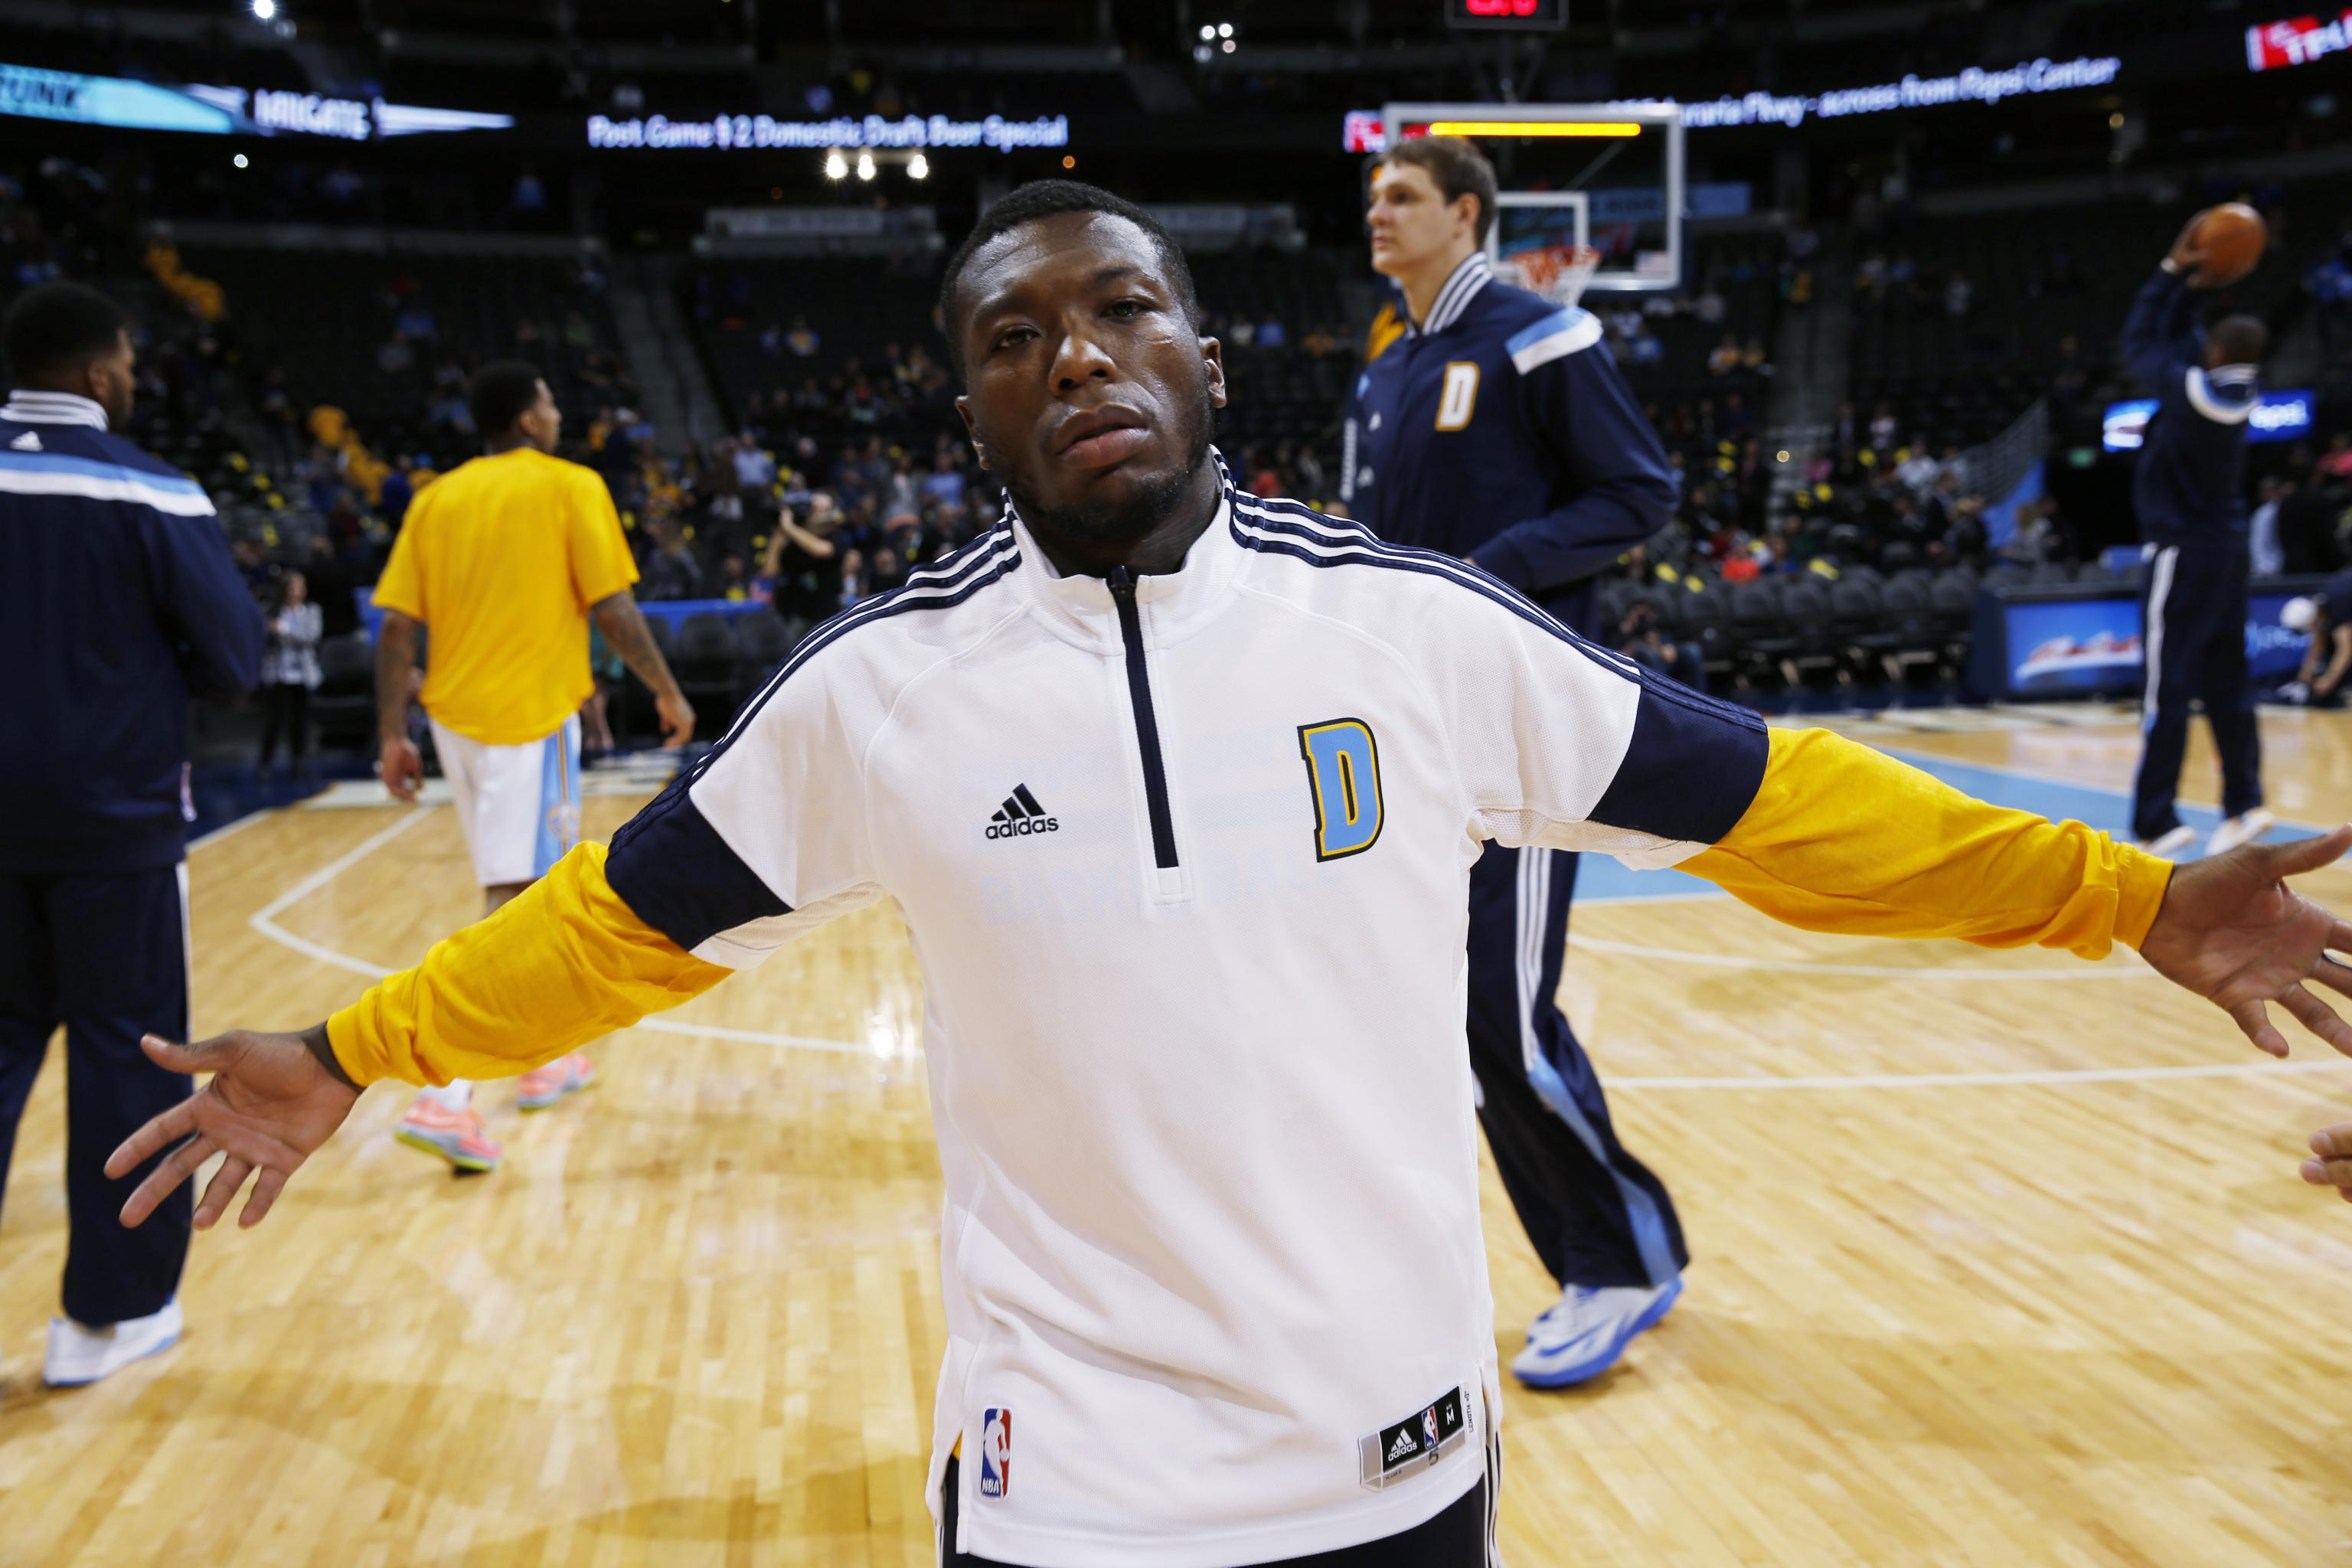 Especificidad patinar solamente  Nate Robinson Announces He's 'OK' After Knockout Loss to Jake Paul |  Bleacher Report | Latest News, Videos and Highlights